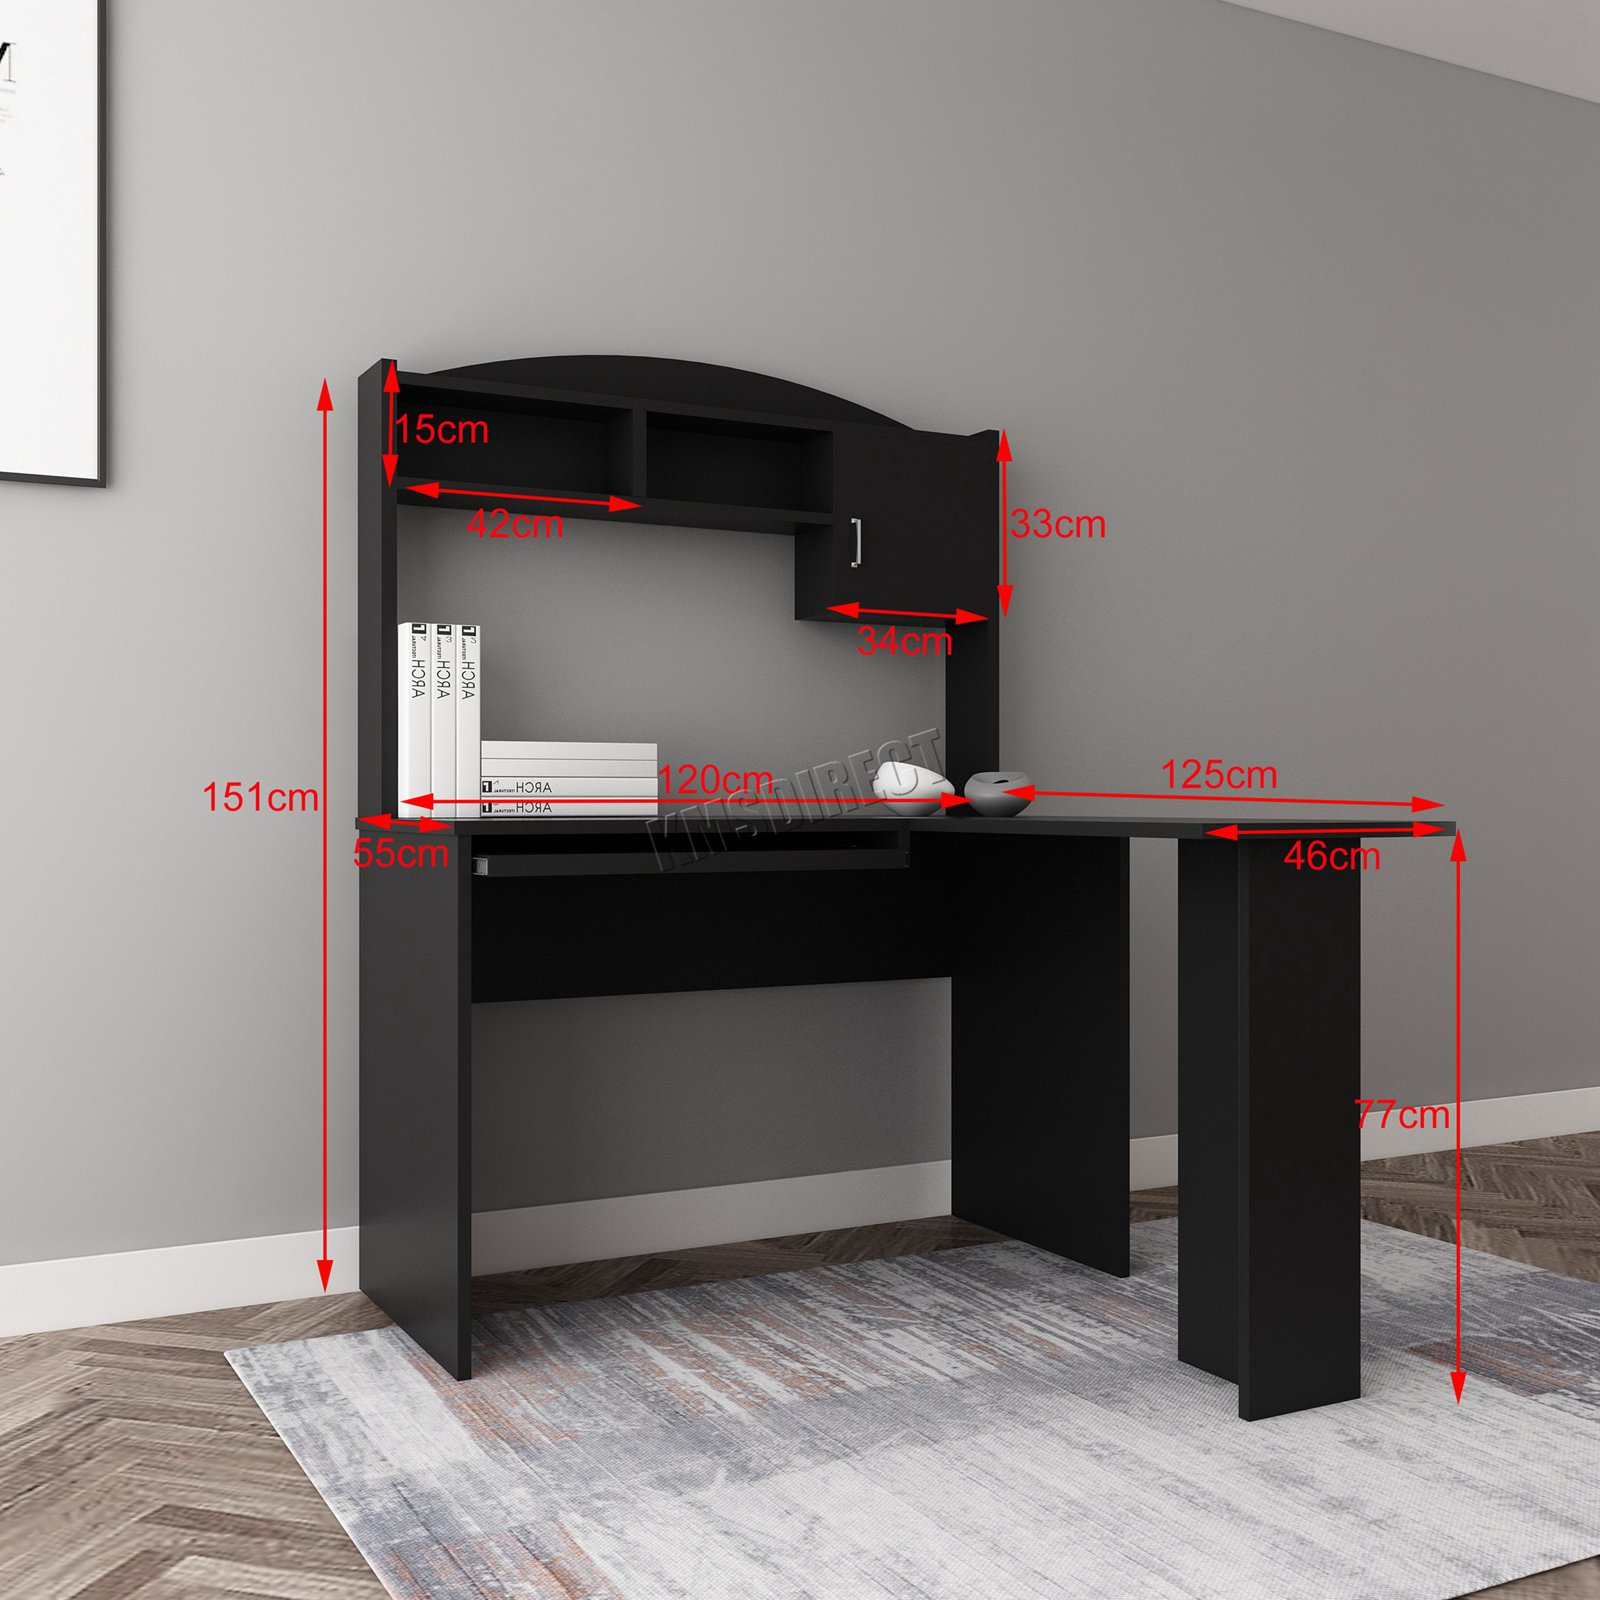 WestWood L-shaped Computer PC Desk Table With Shelves ...